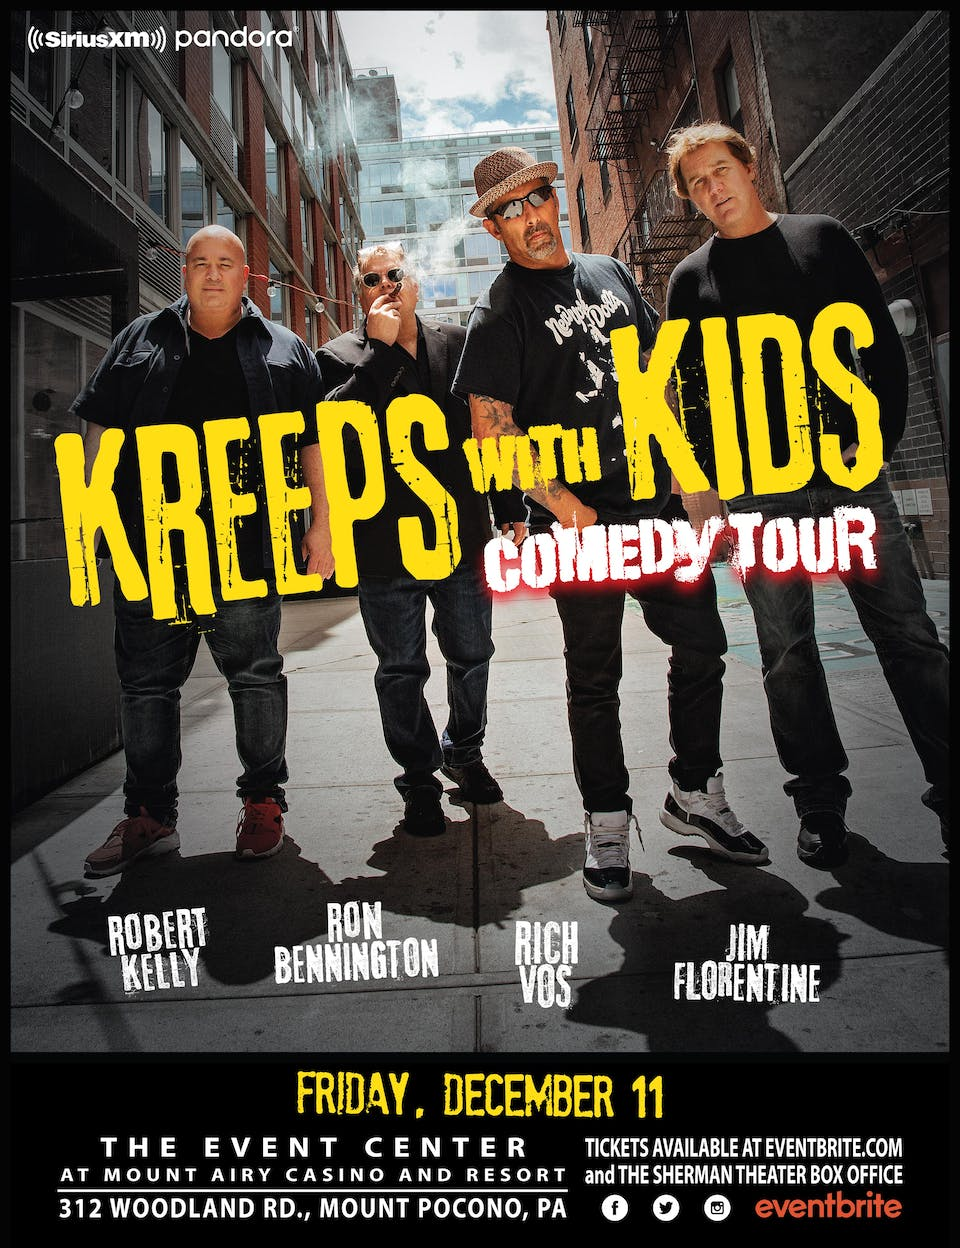 POSTPONED to DEC 11: Kreeps With Kids - Comedy Tour